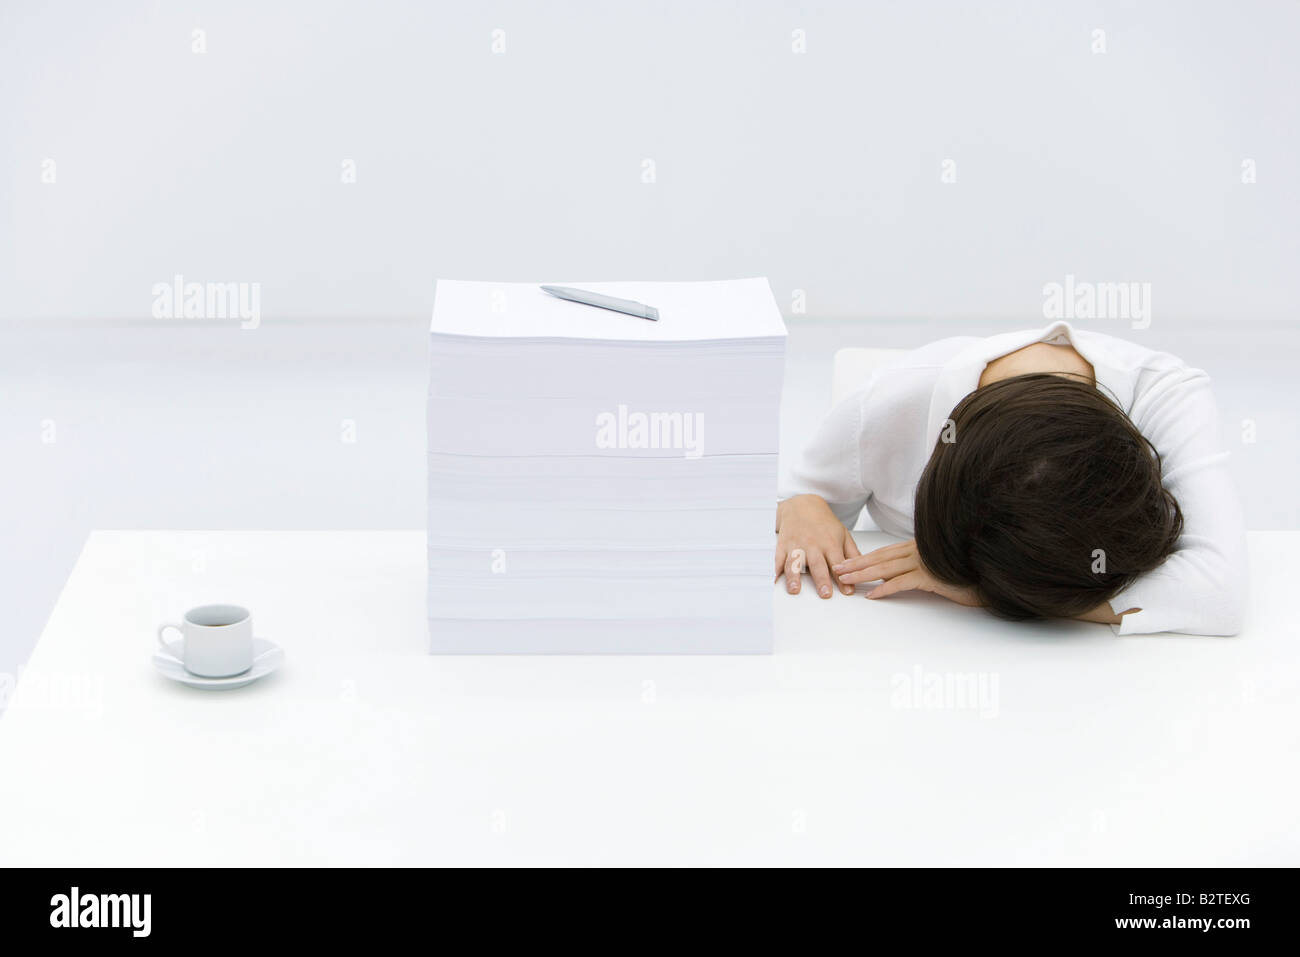 Woman with head down on desk, next to tall stack of papers - Stock Image